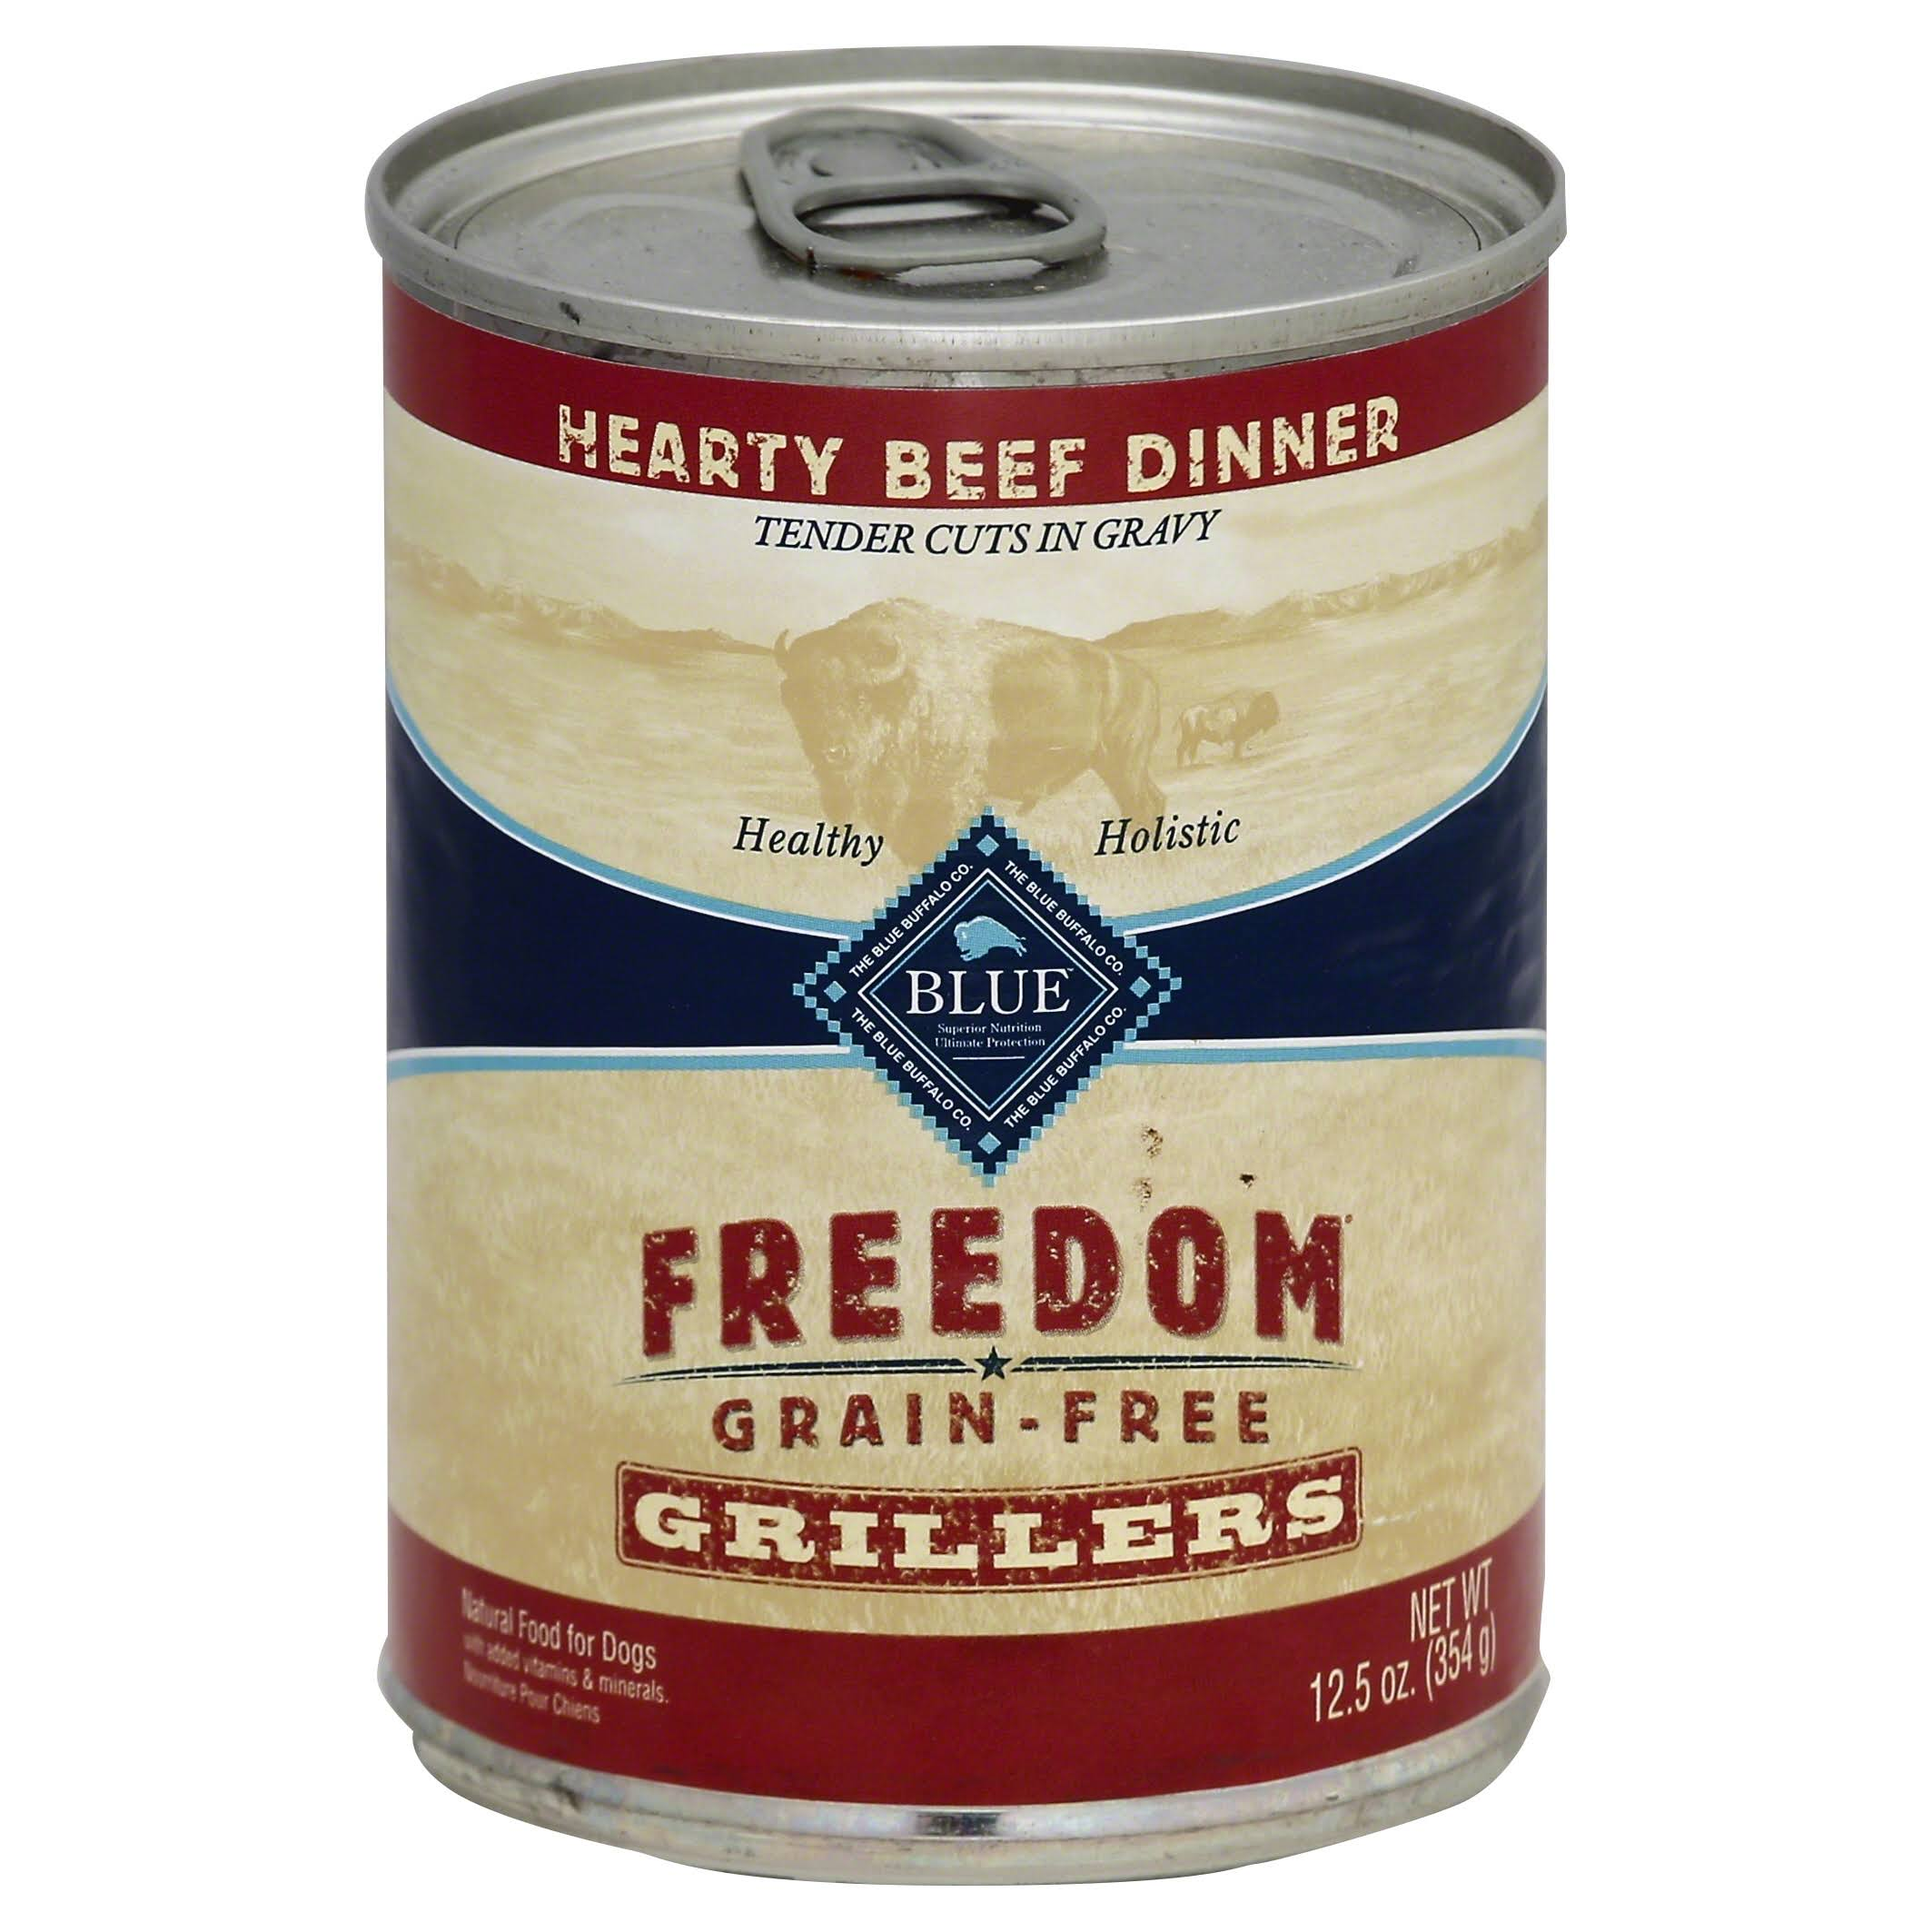 Blue Freedom Grain Free Grillers Adult Dog Food - Hearty Beef Dinner, 12.5oz